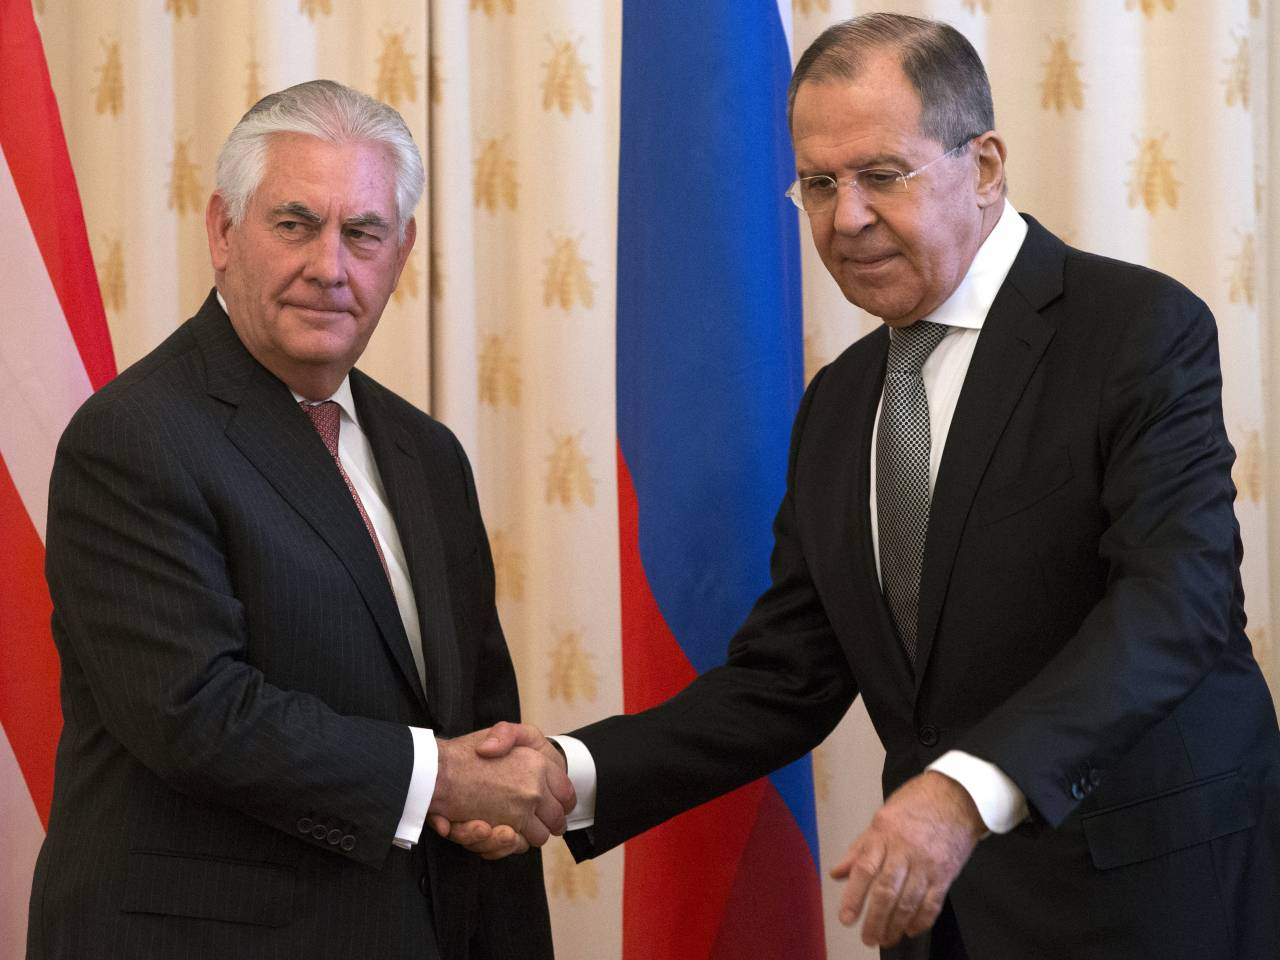 Tillerson: Trump says look past turmoil and re-engage Russia